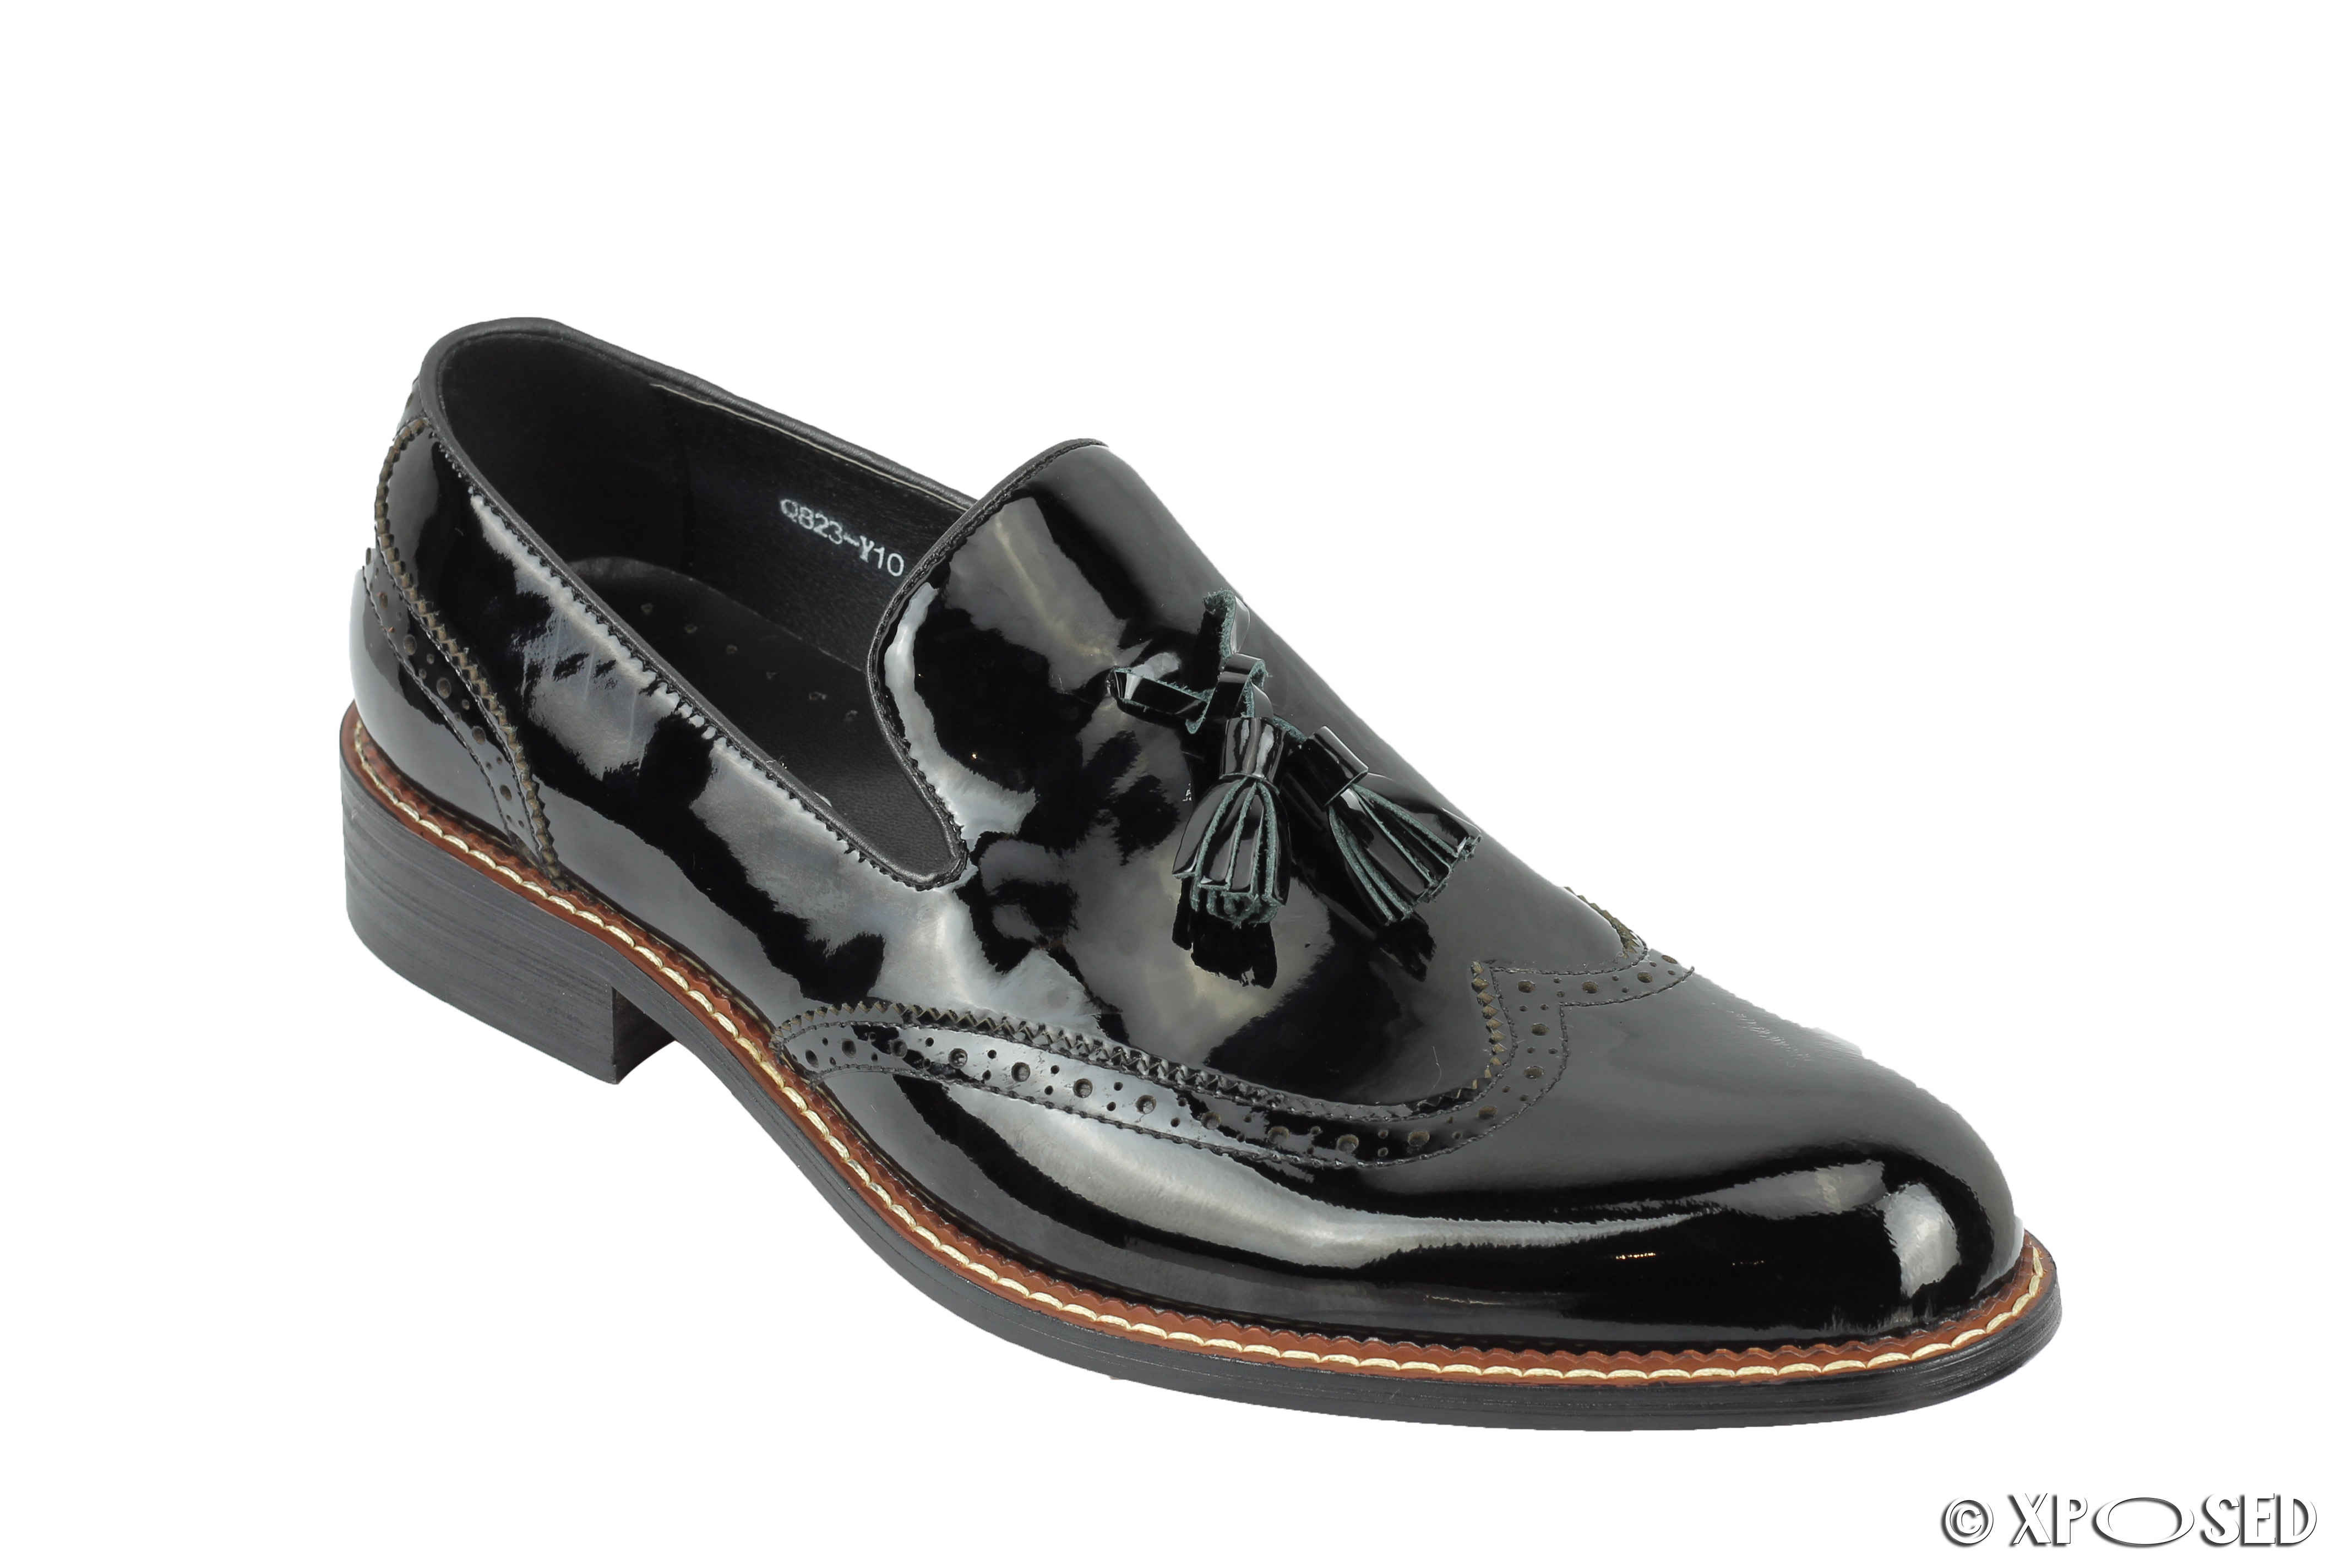 Mens Vintage Shiny Patent Real Leather Tassel Loafers Retro Brogue Shoes Black